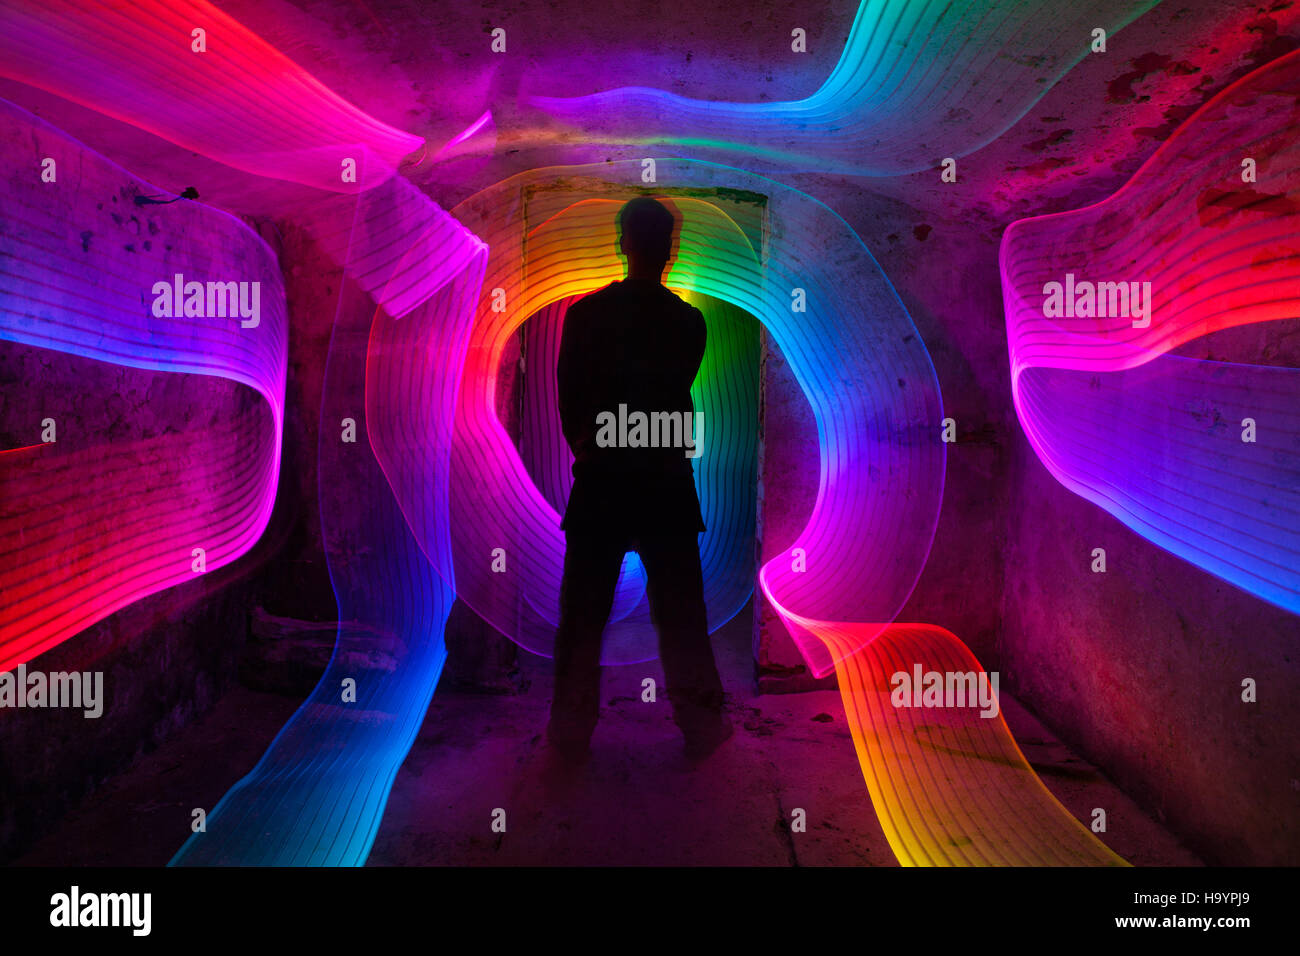 Light painting in damp rustic basement. - Stock Image